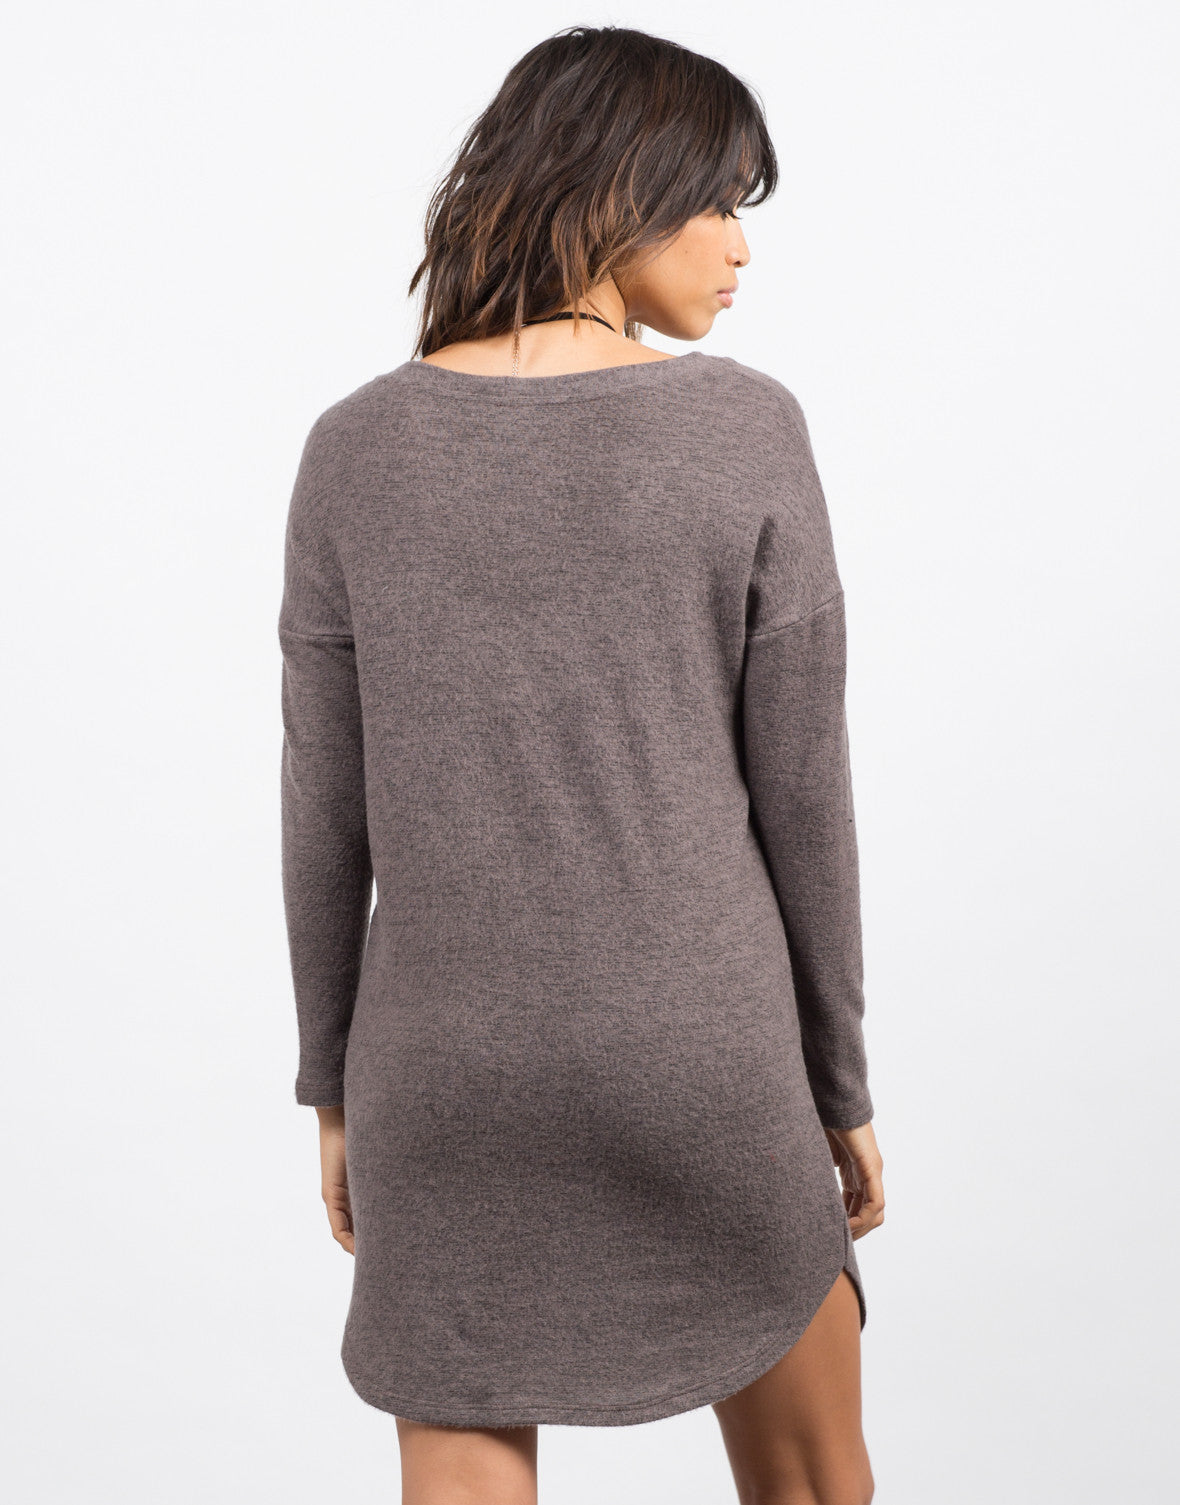 Back View of Cozy V-Neck Sweater Dress